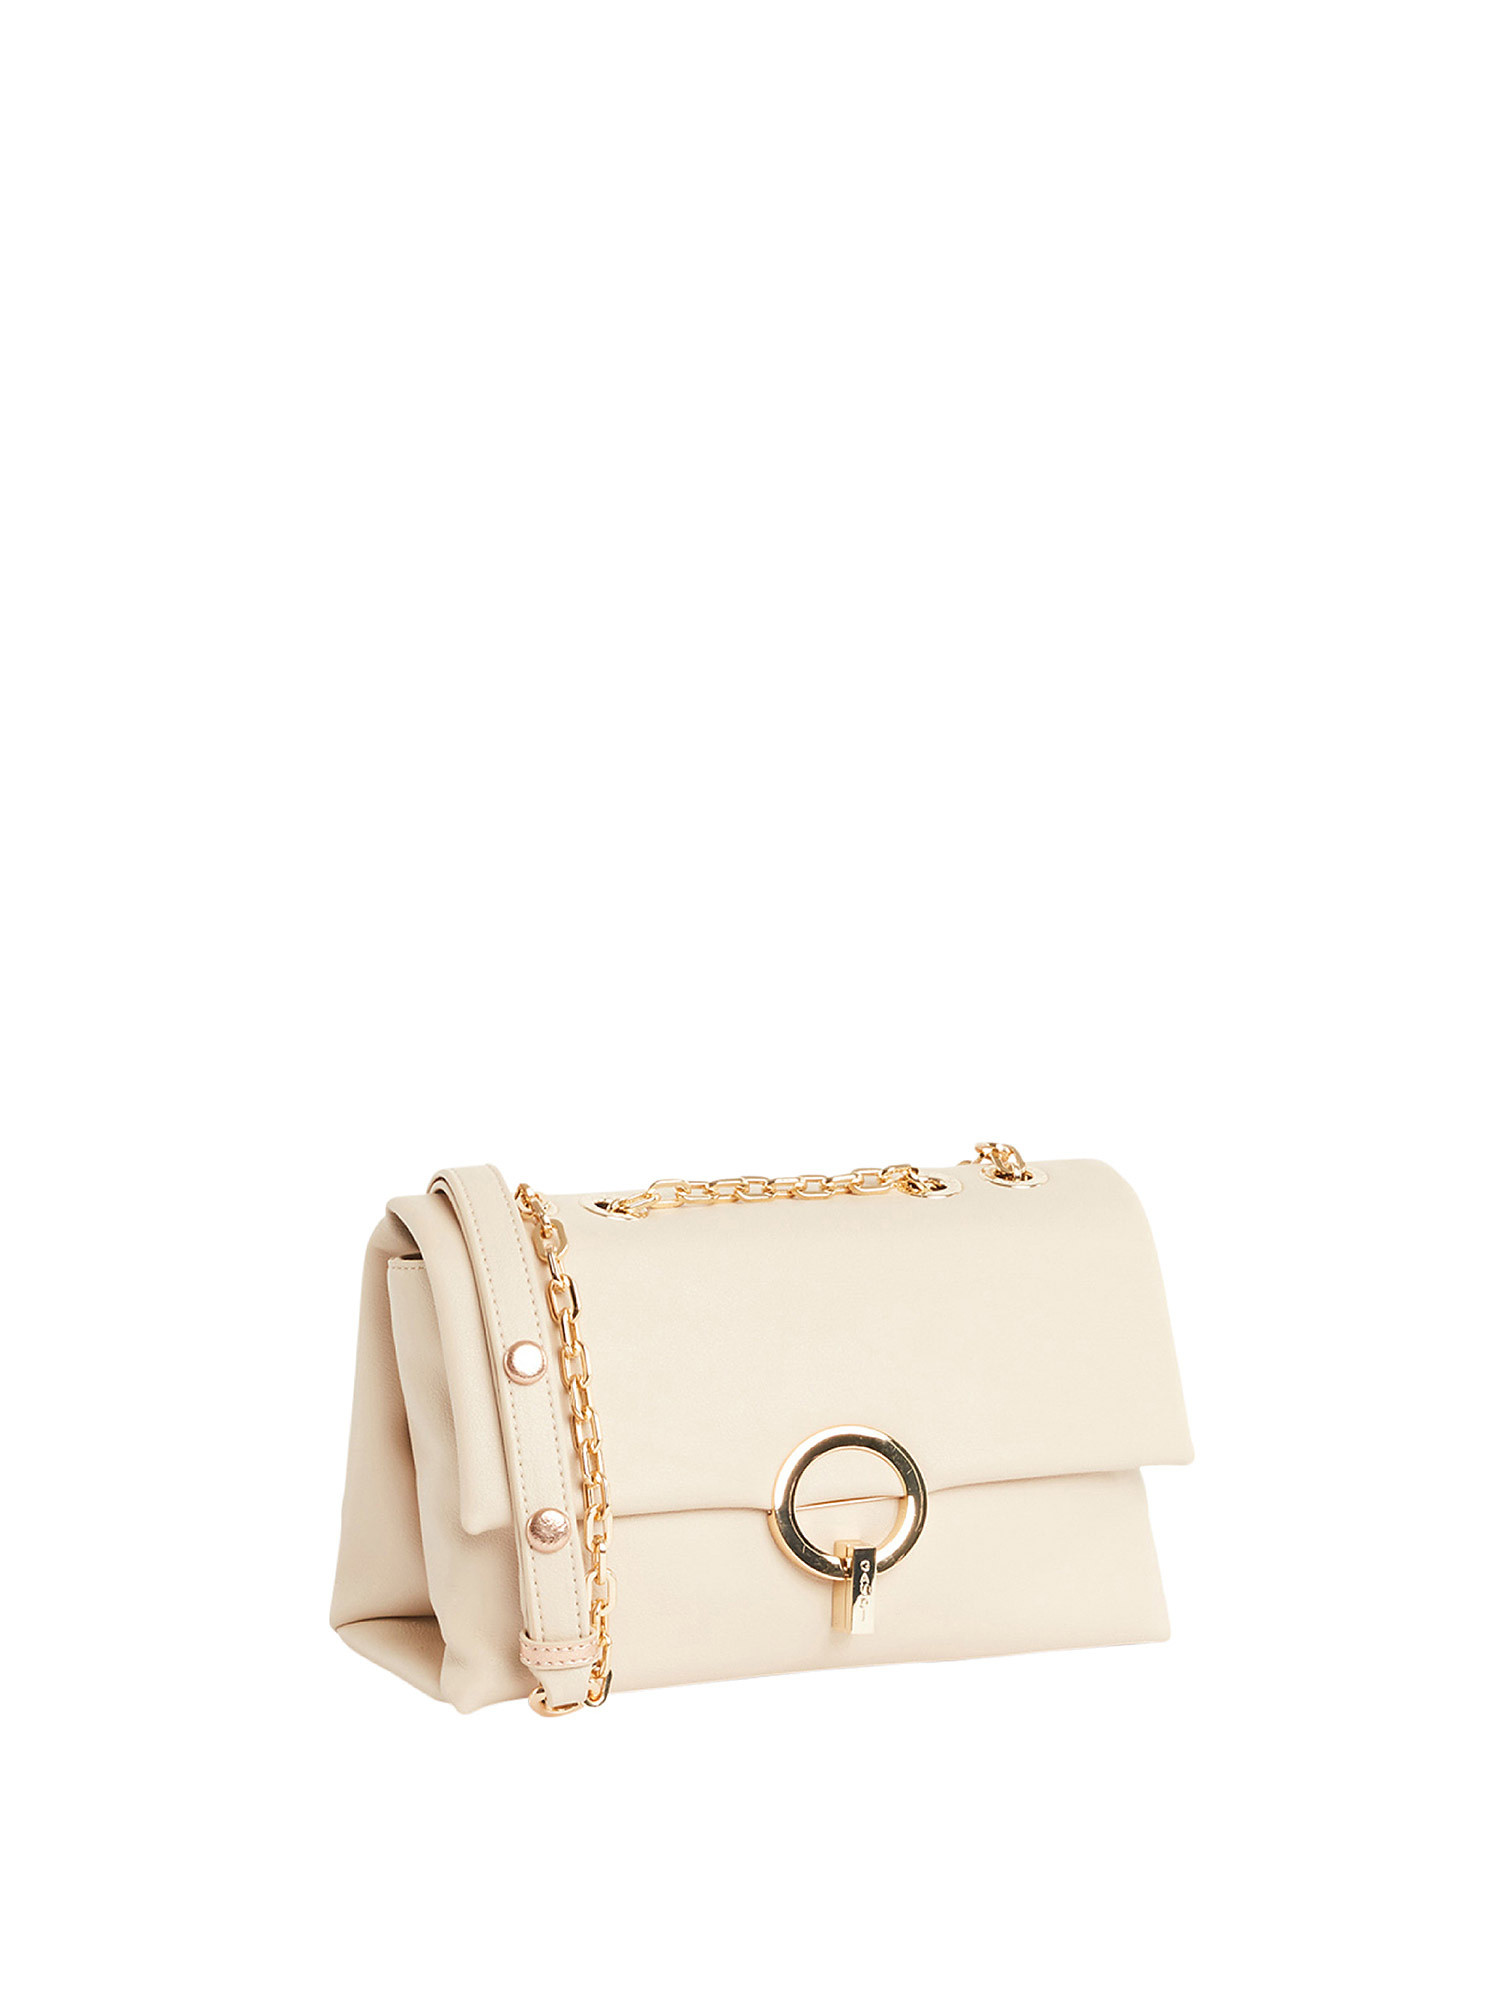 Borsa a tracolla in ecopelle, Beige, large image number 1